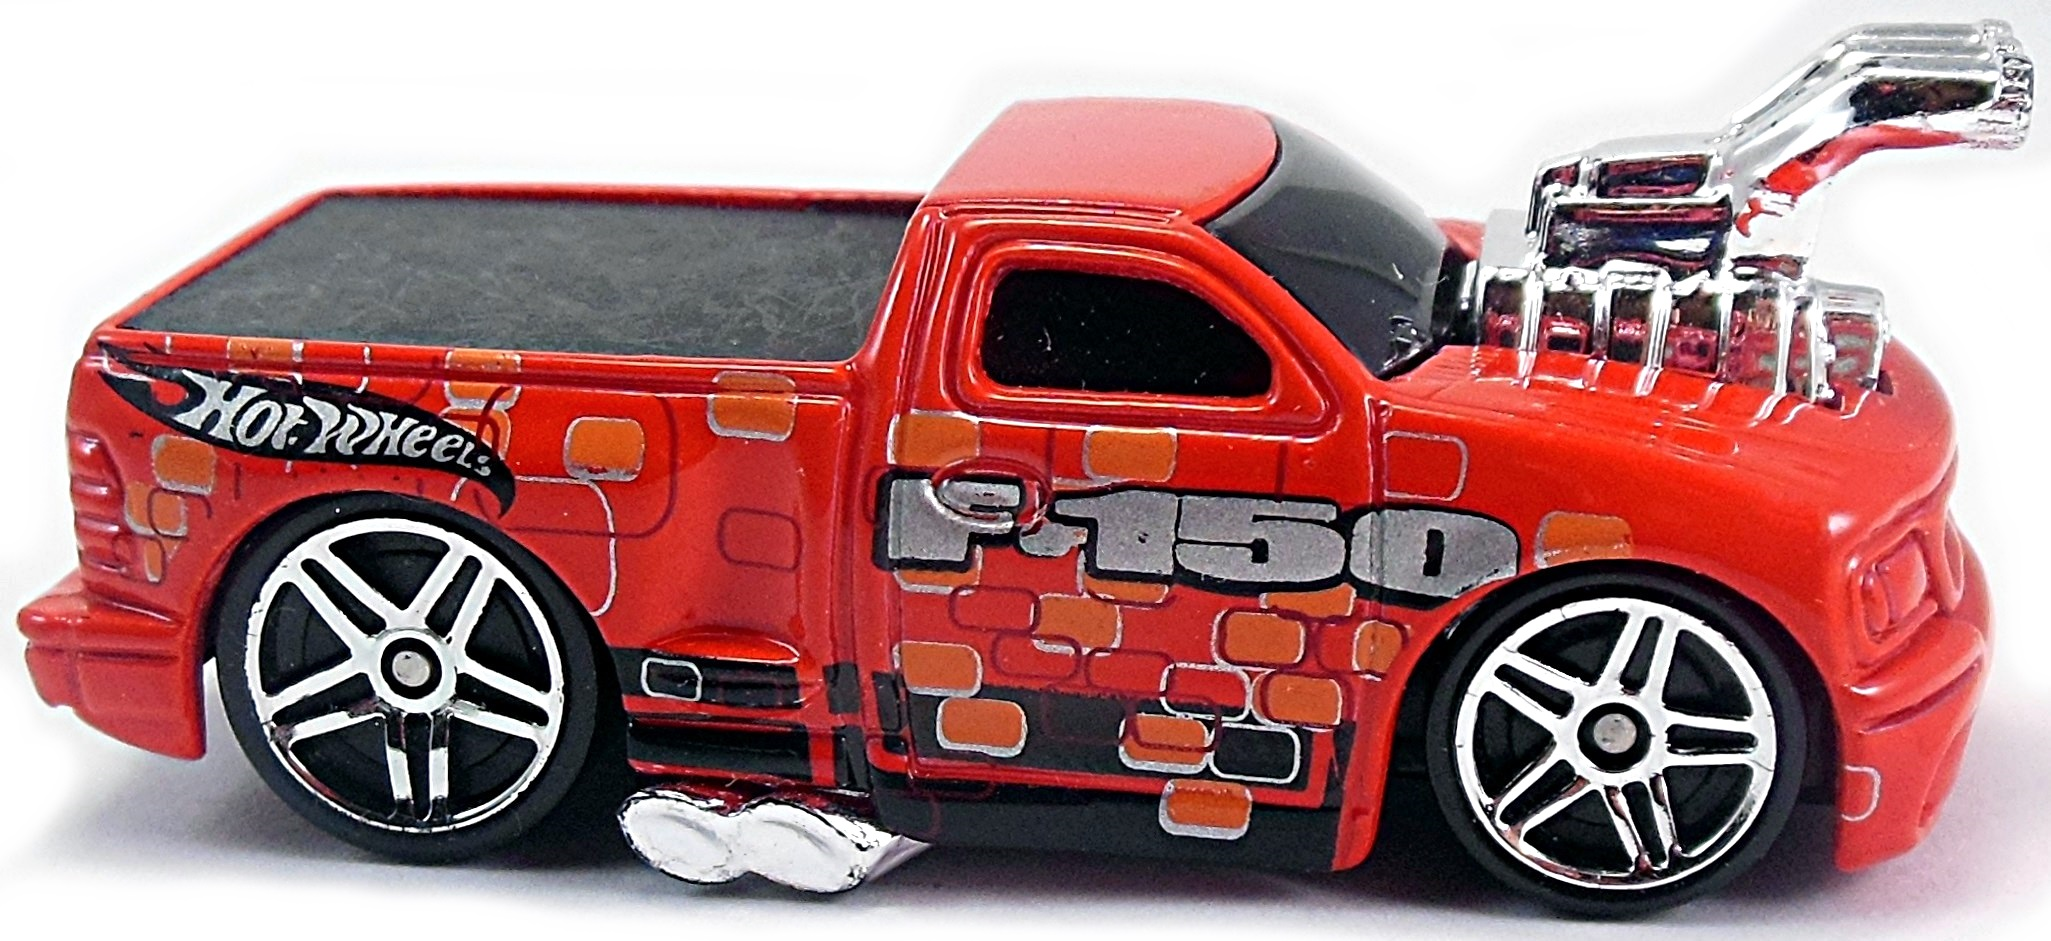 1987 Ford F150 >> Ford F-150 ('Tooned) – 77mm - 2003 | Hot Wheels Newsletter